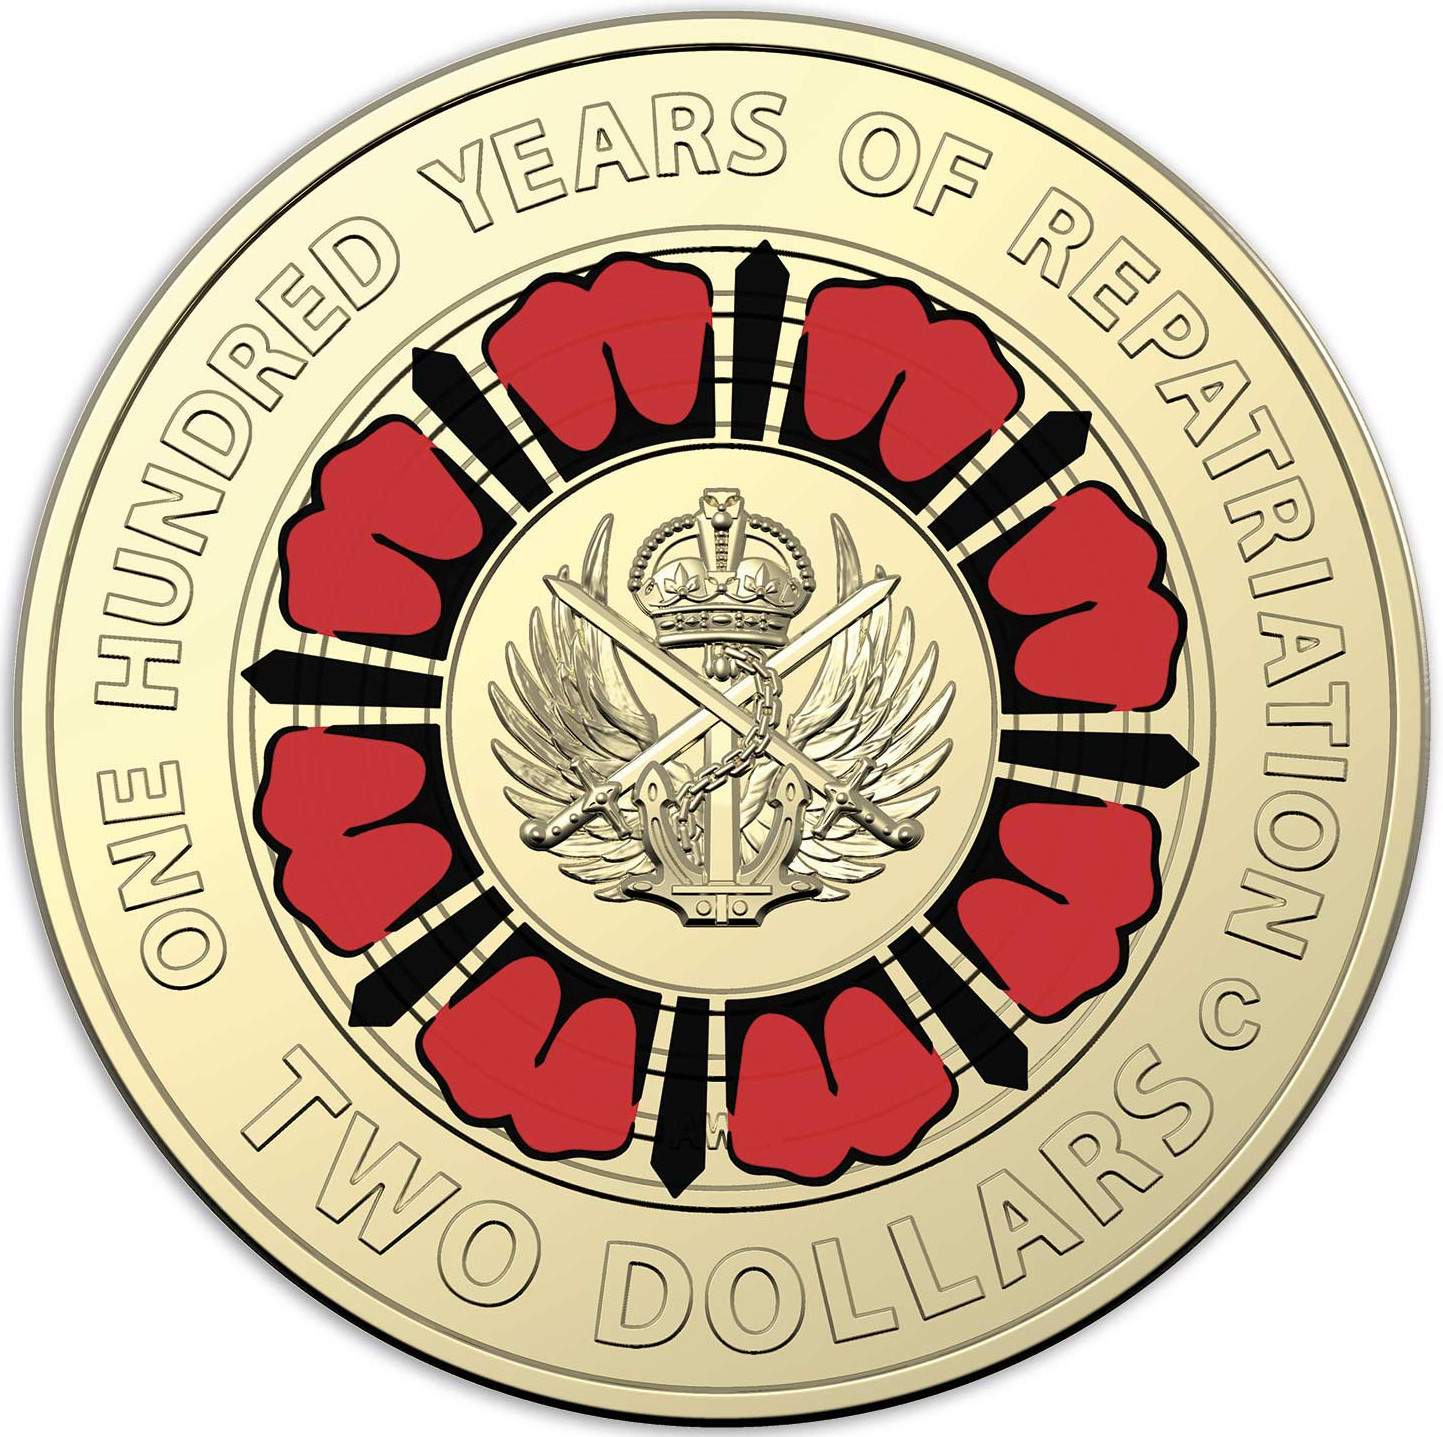 Two Dollars 2019 Repatriation (Black and Red): Photo Centenary of Repatriation circulating coloured $2 coin